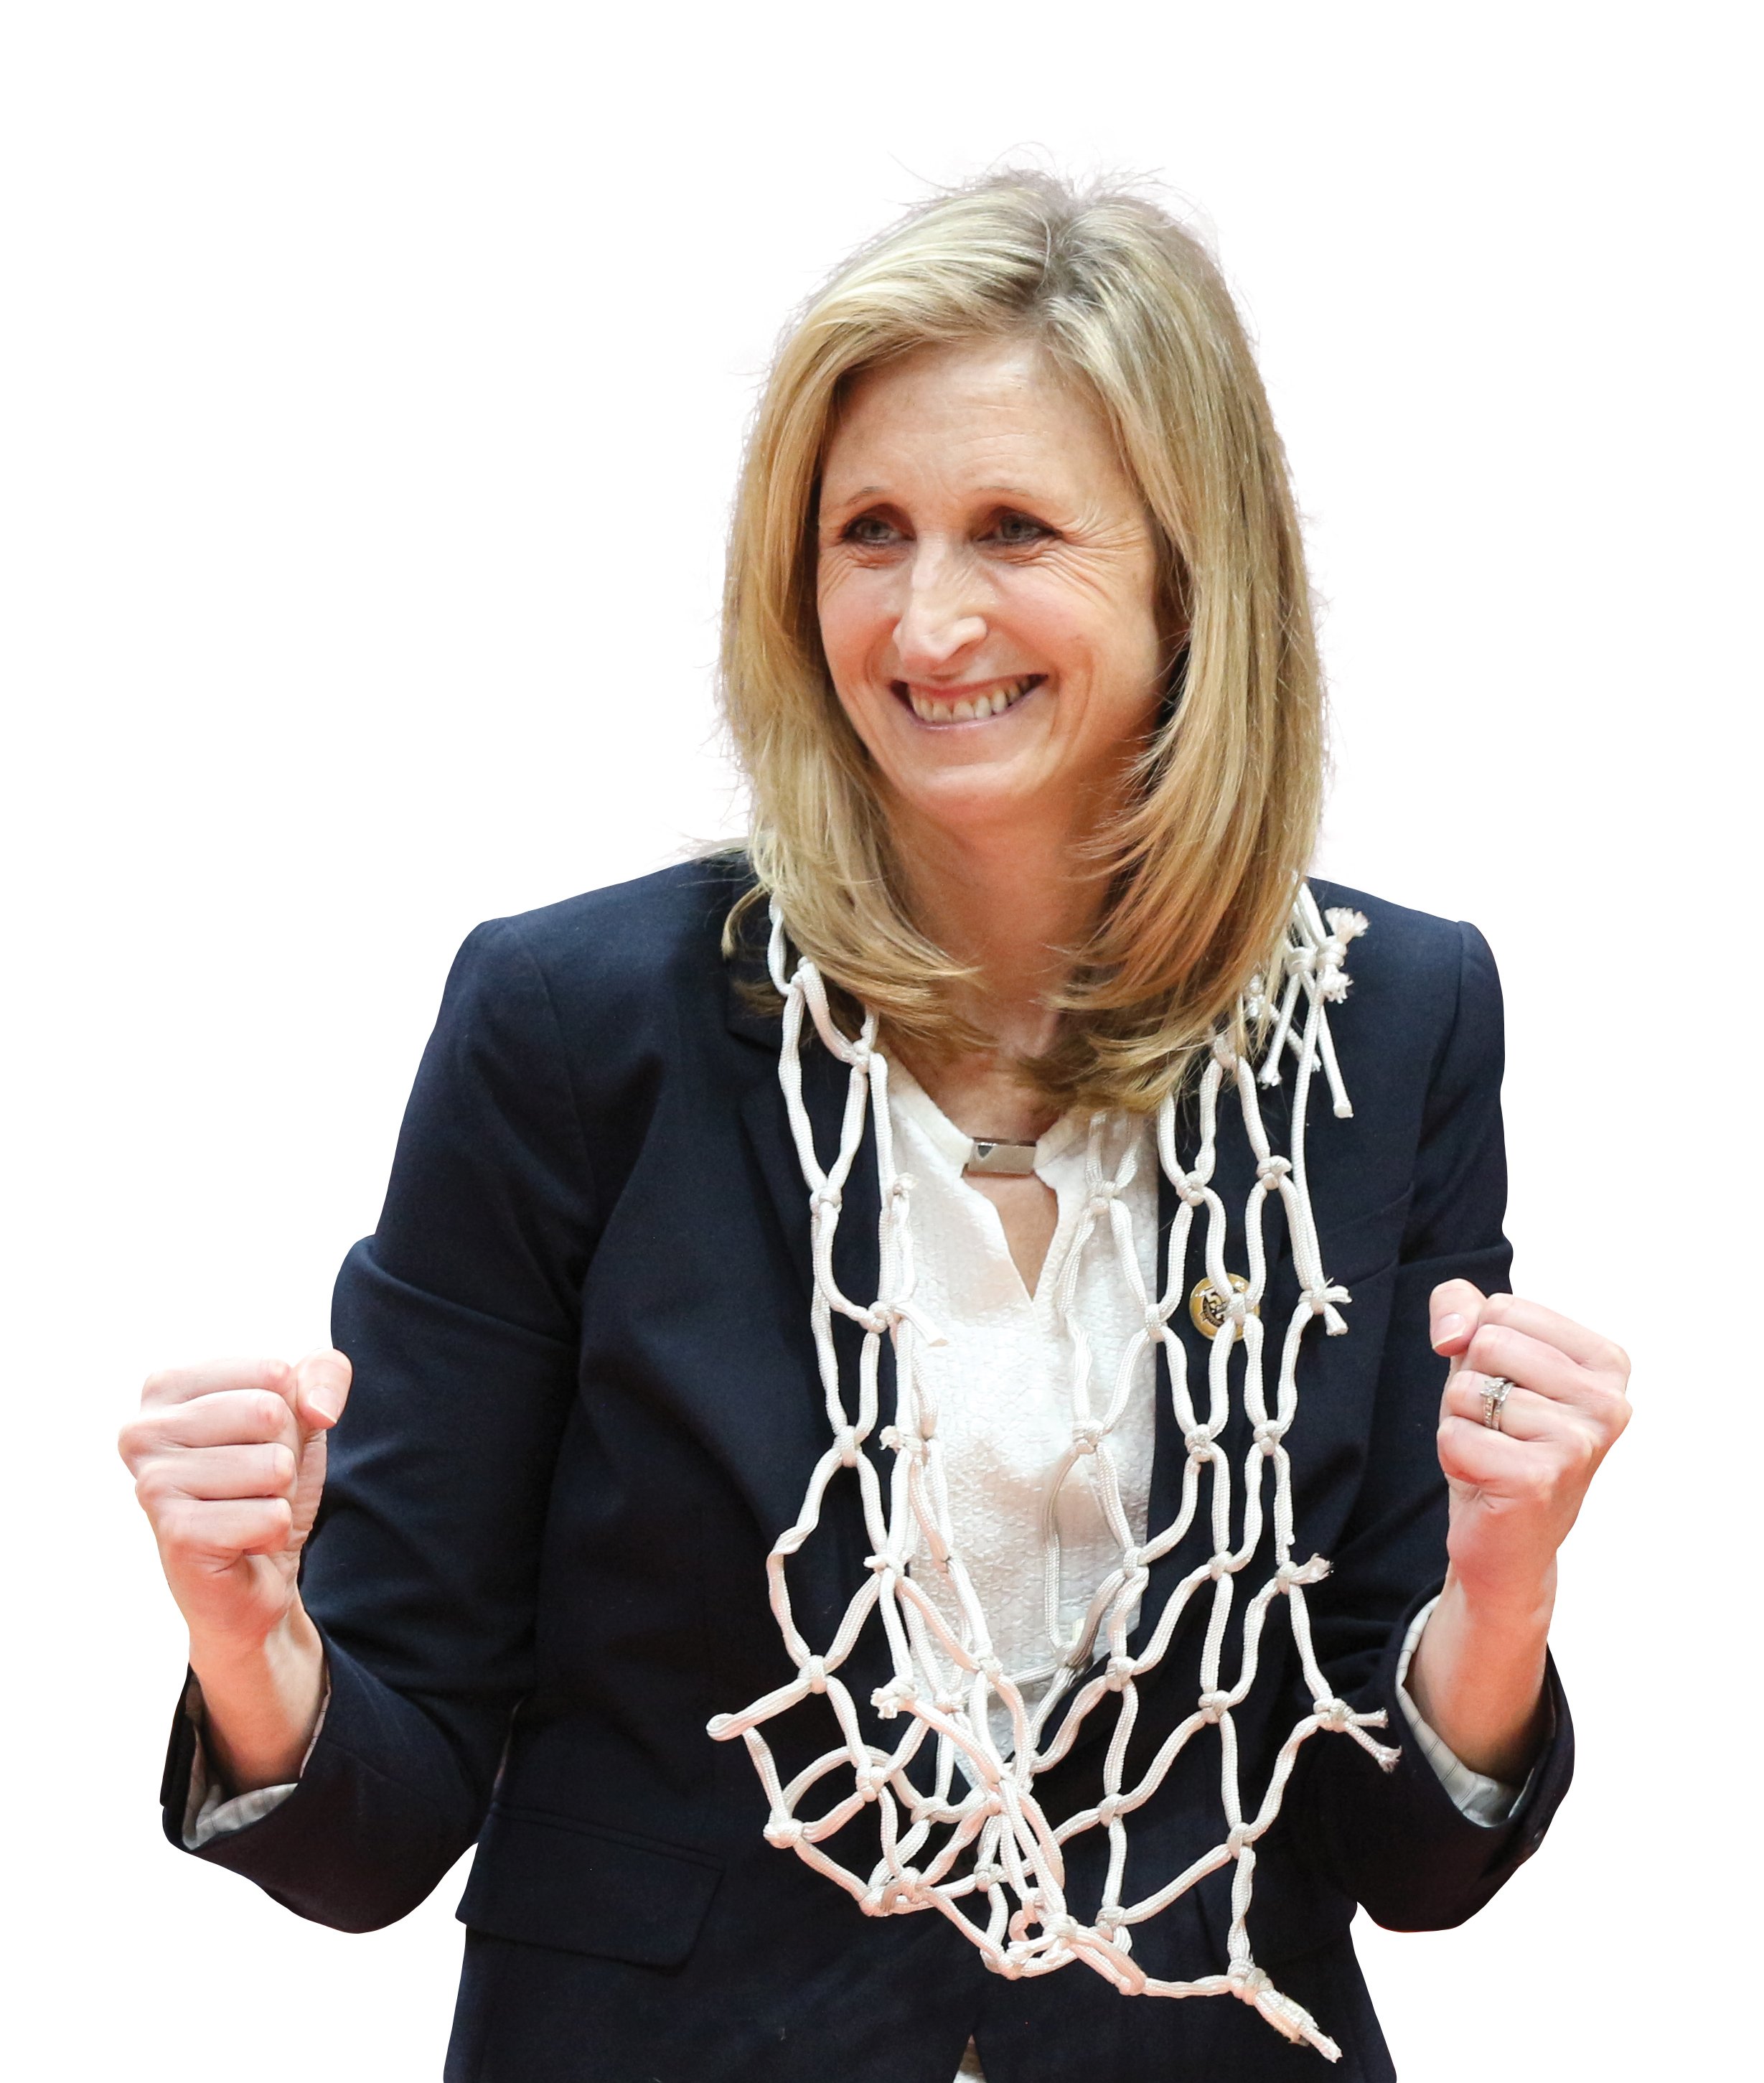 Photo of UC Davis alumna and women's basketball coach Jennifer Gross celebrating with net around her neck